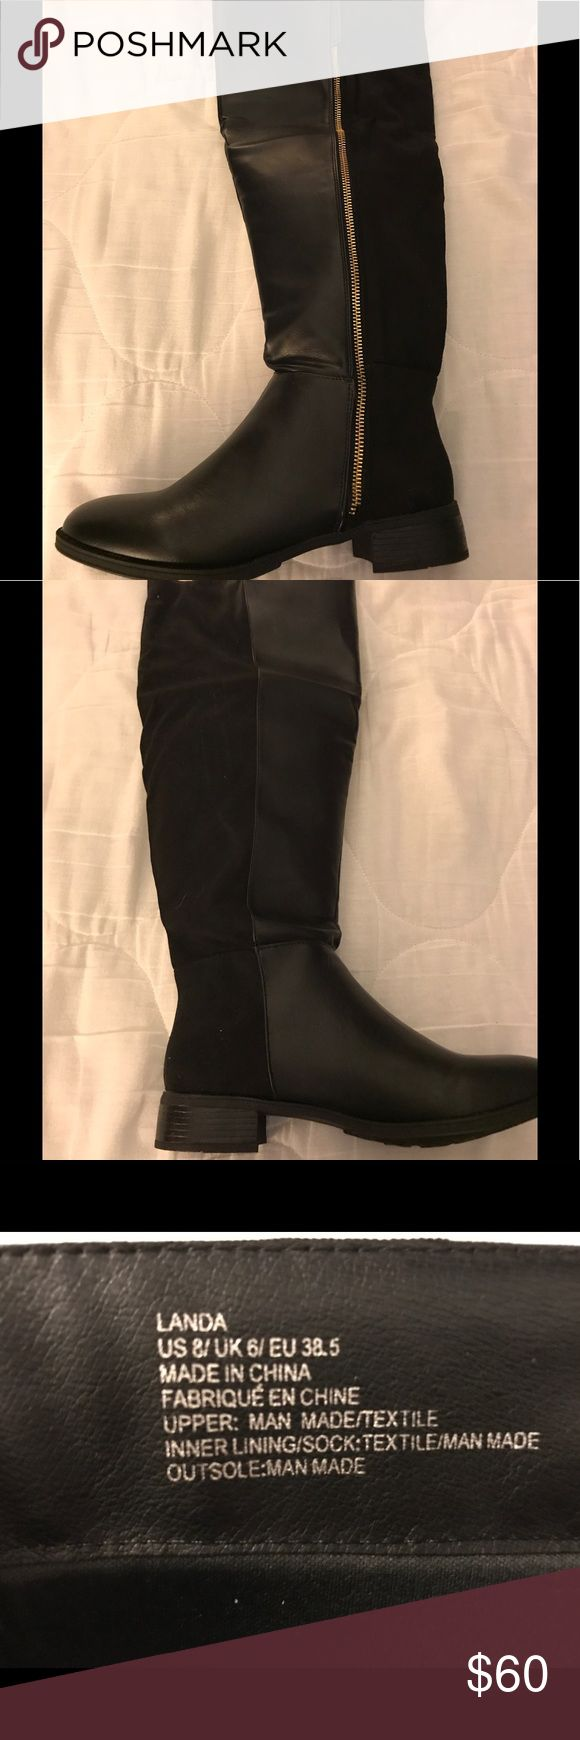 Shoe Dazzle tall black boots NIB Black leather/suede tall boots. I bought these from another Posher but my calf are to big for them. Love them and bummed they don't fit ☹️ Shoe Dazzle Shoes Over the Knee Boots